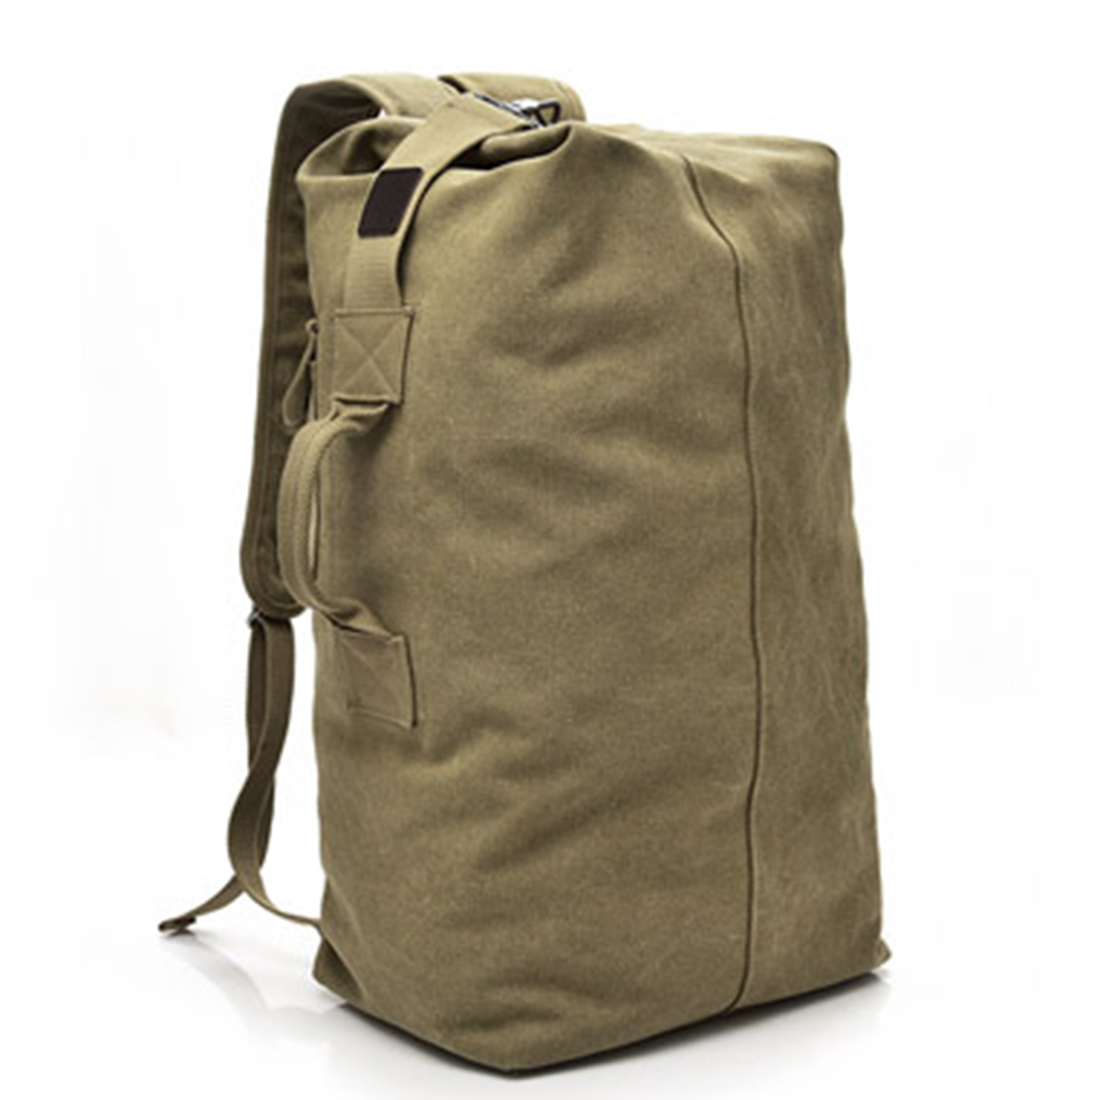 Outdoor Travelling Canvas Outdoor Bags Hiking Camping font b Storage b font Bag Backpack Bags Men